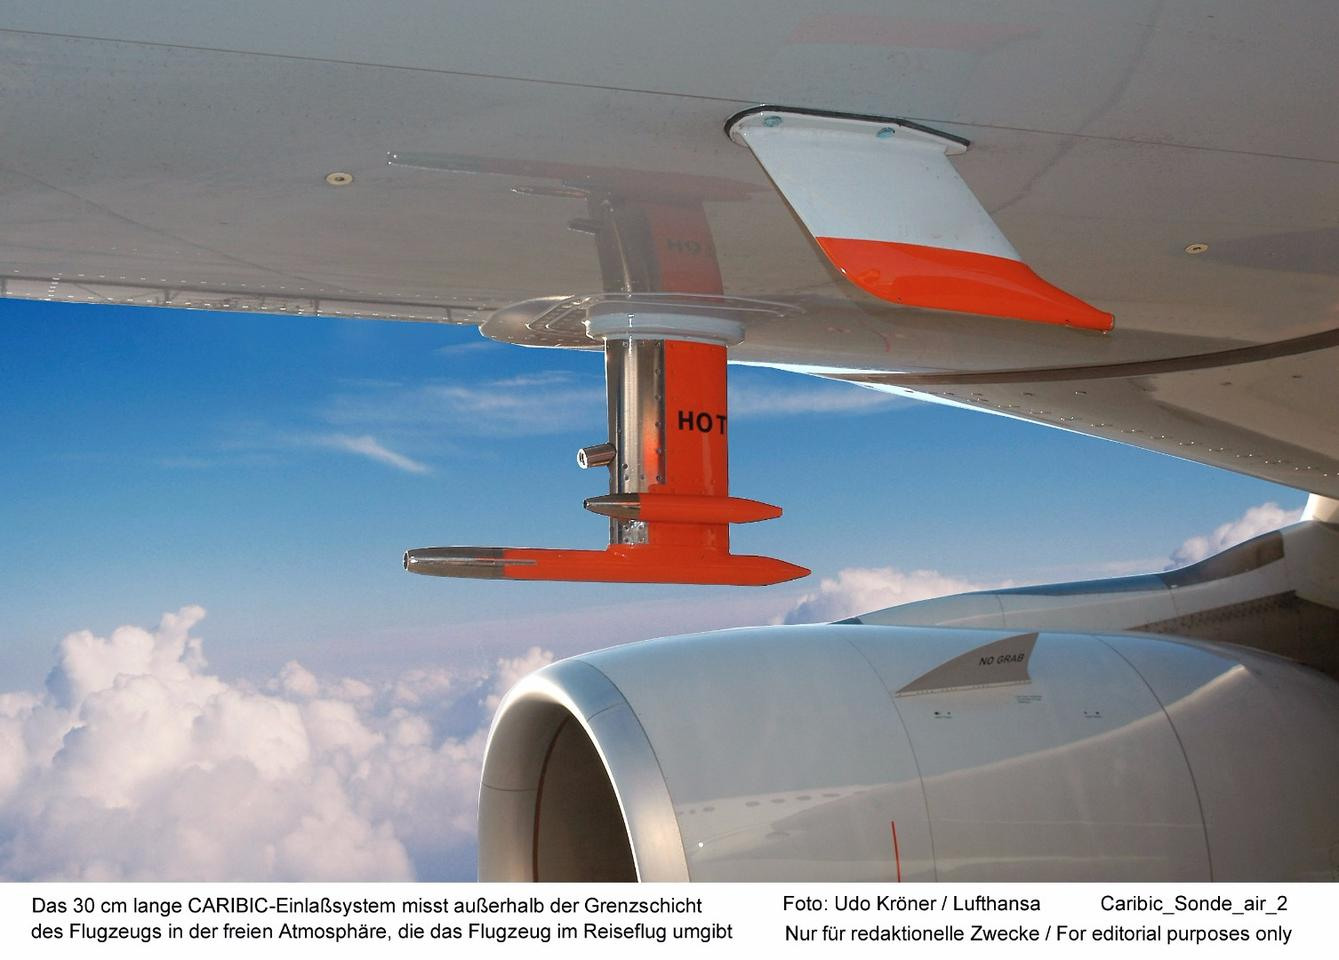 The IAGOS project has been measuring trace gases and aerosol particles in the tropopause region since 1997, by flying a modified Airbus A340-600's loaded with scientific instruments through the area